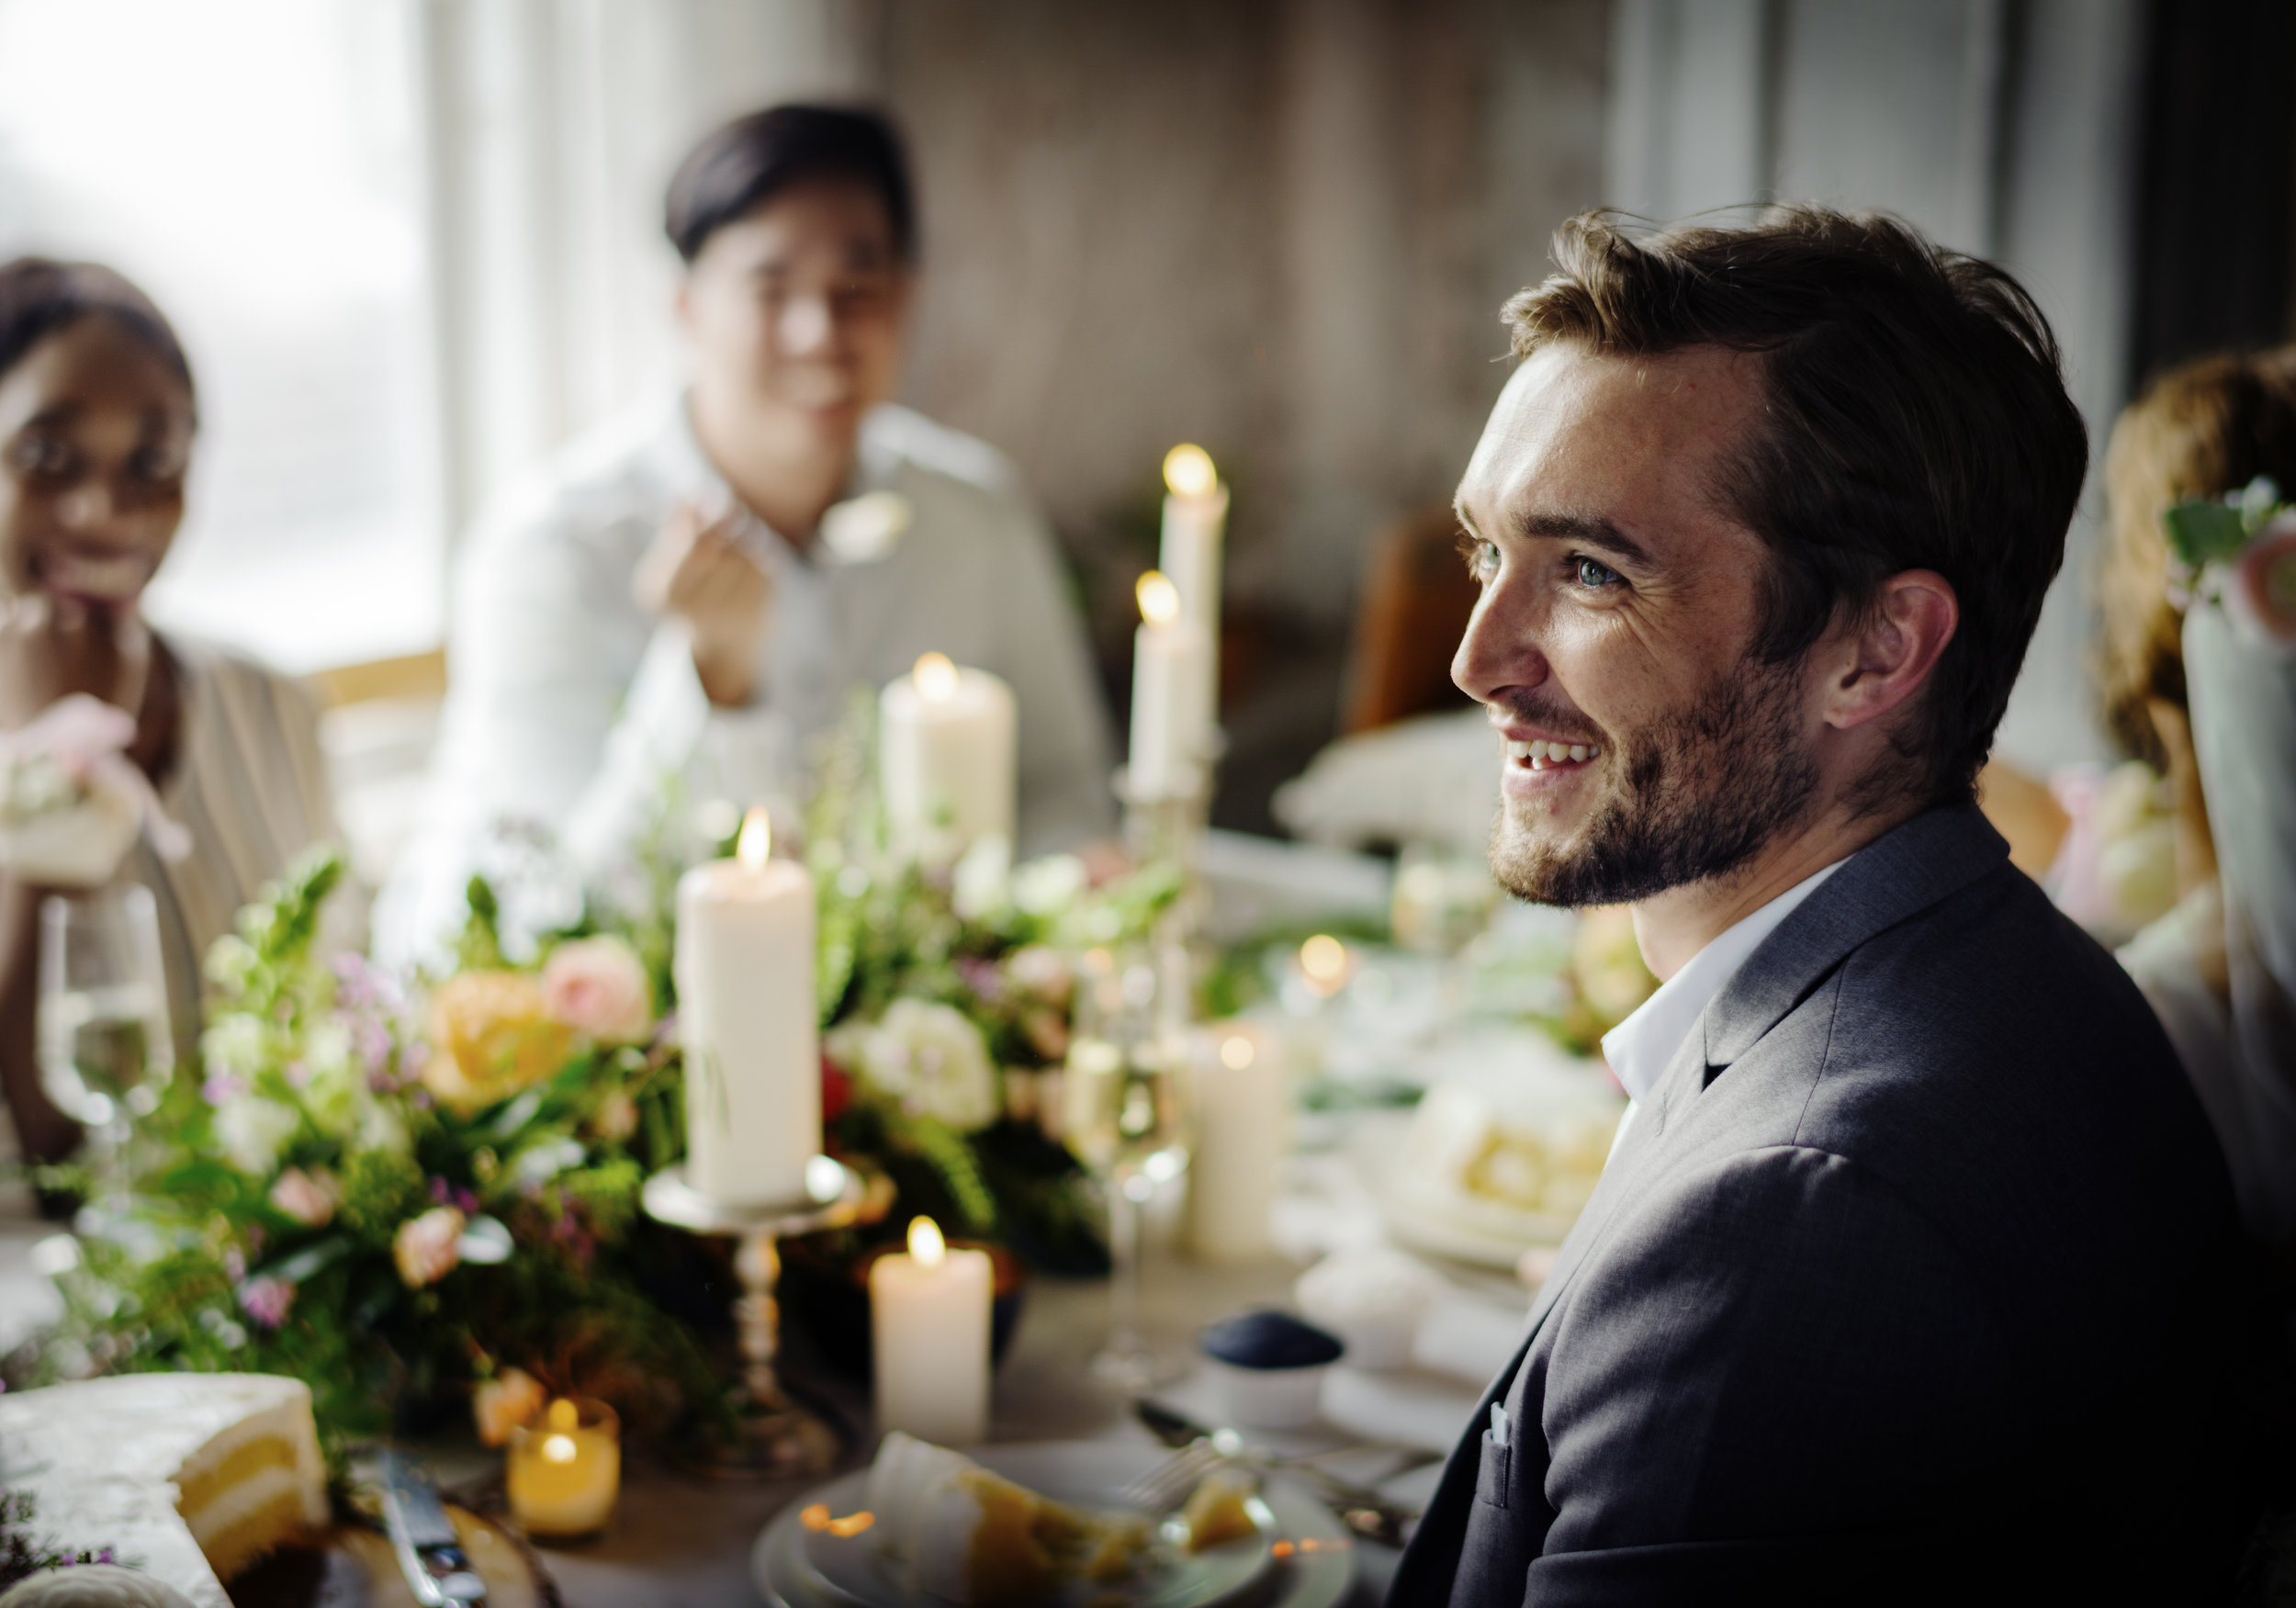 bride-and-groom-having-meal-with-friends-at-PUDM5NY.jpg